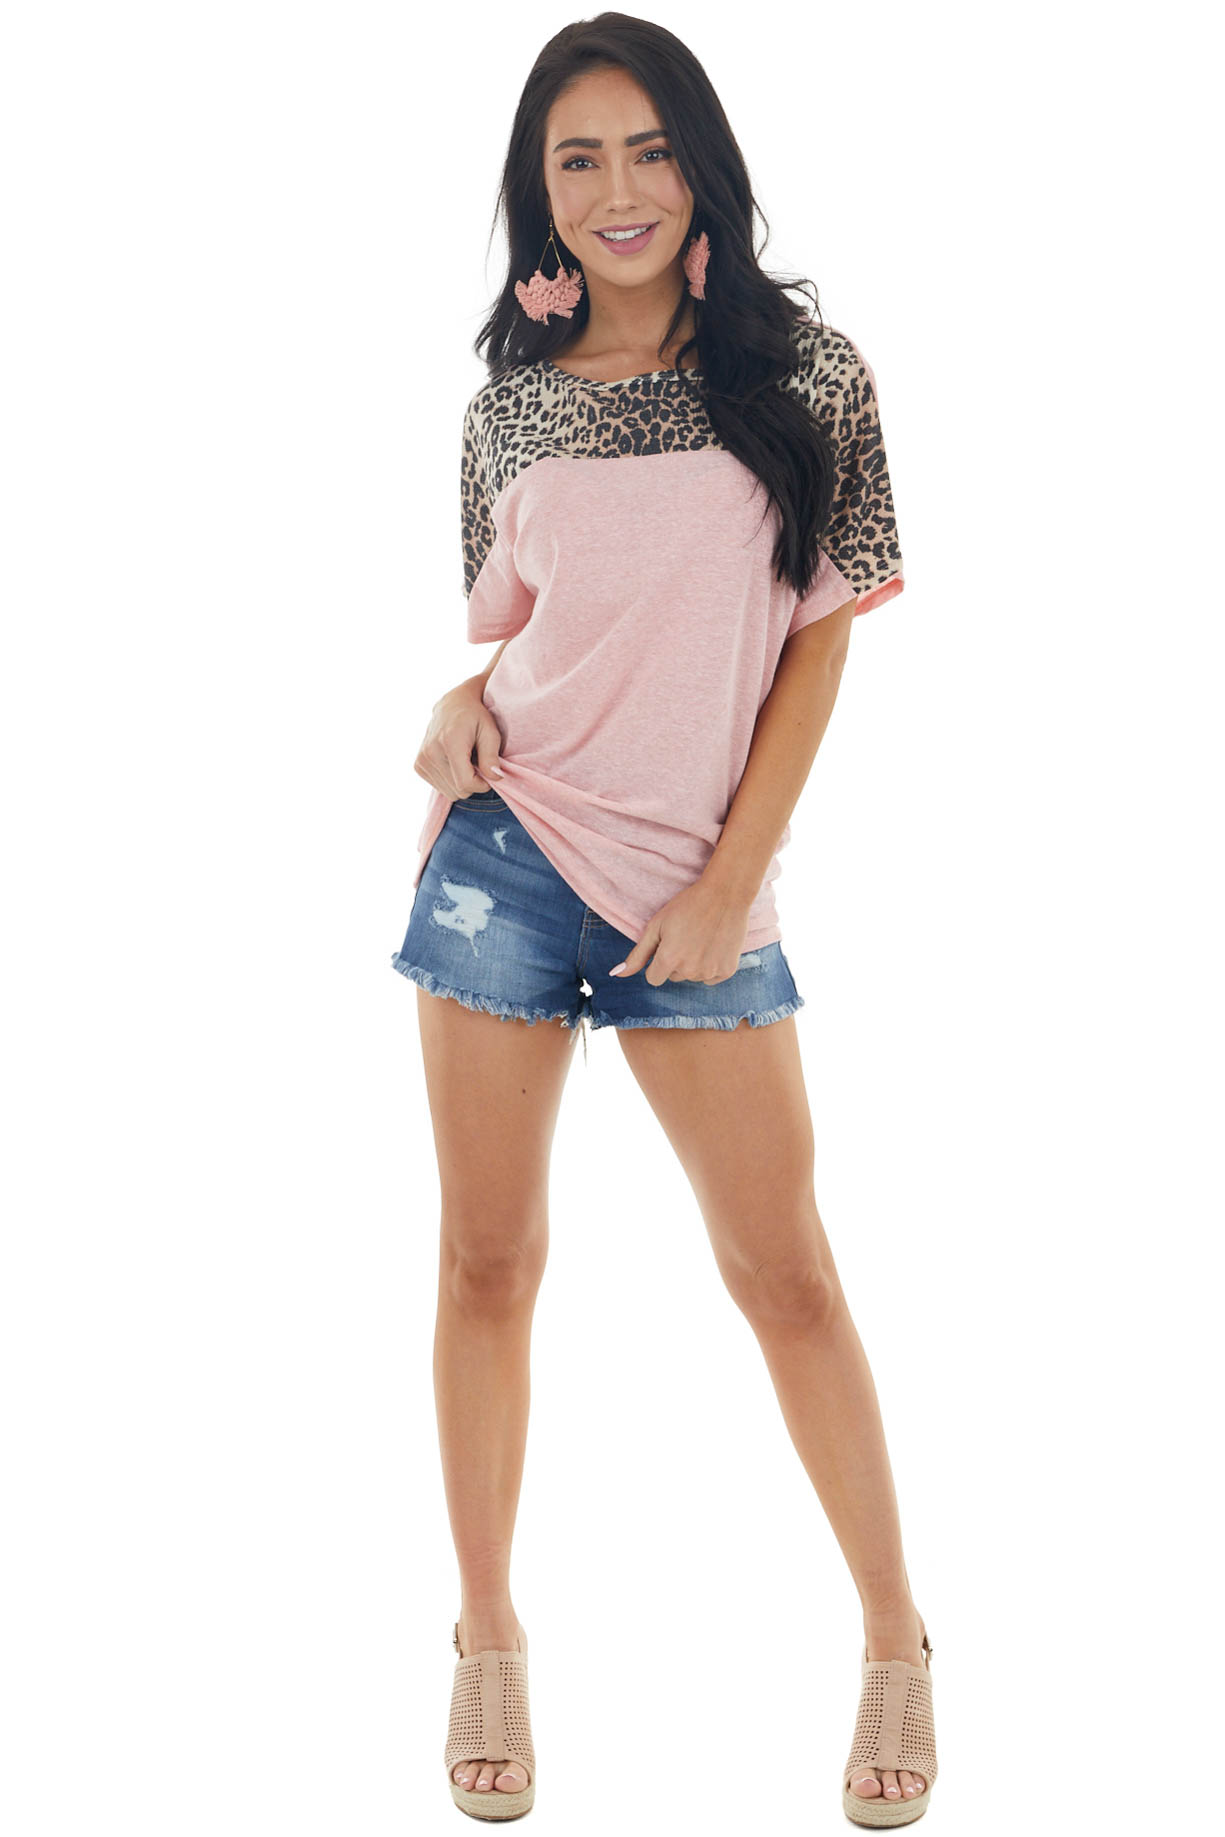 Heathered Bubblegum Short Sleeve Top with Leopard Contrast